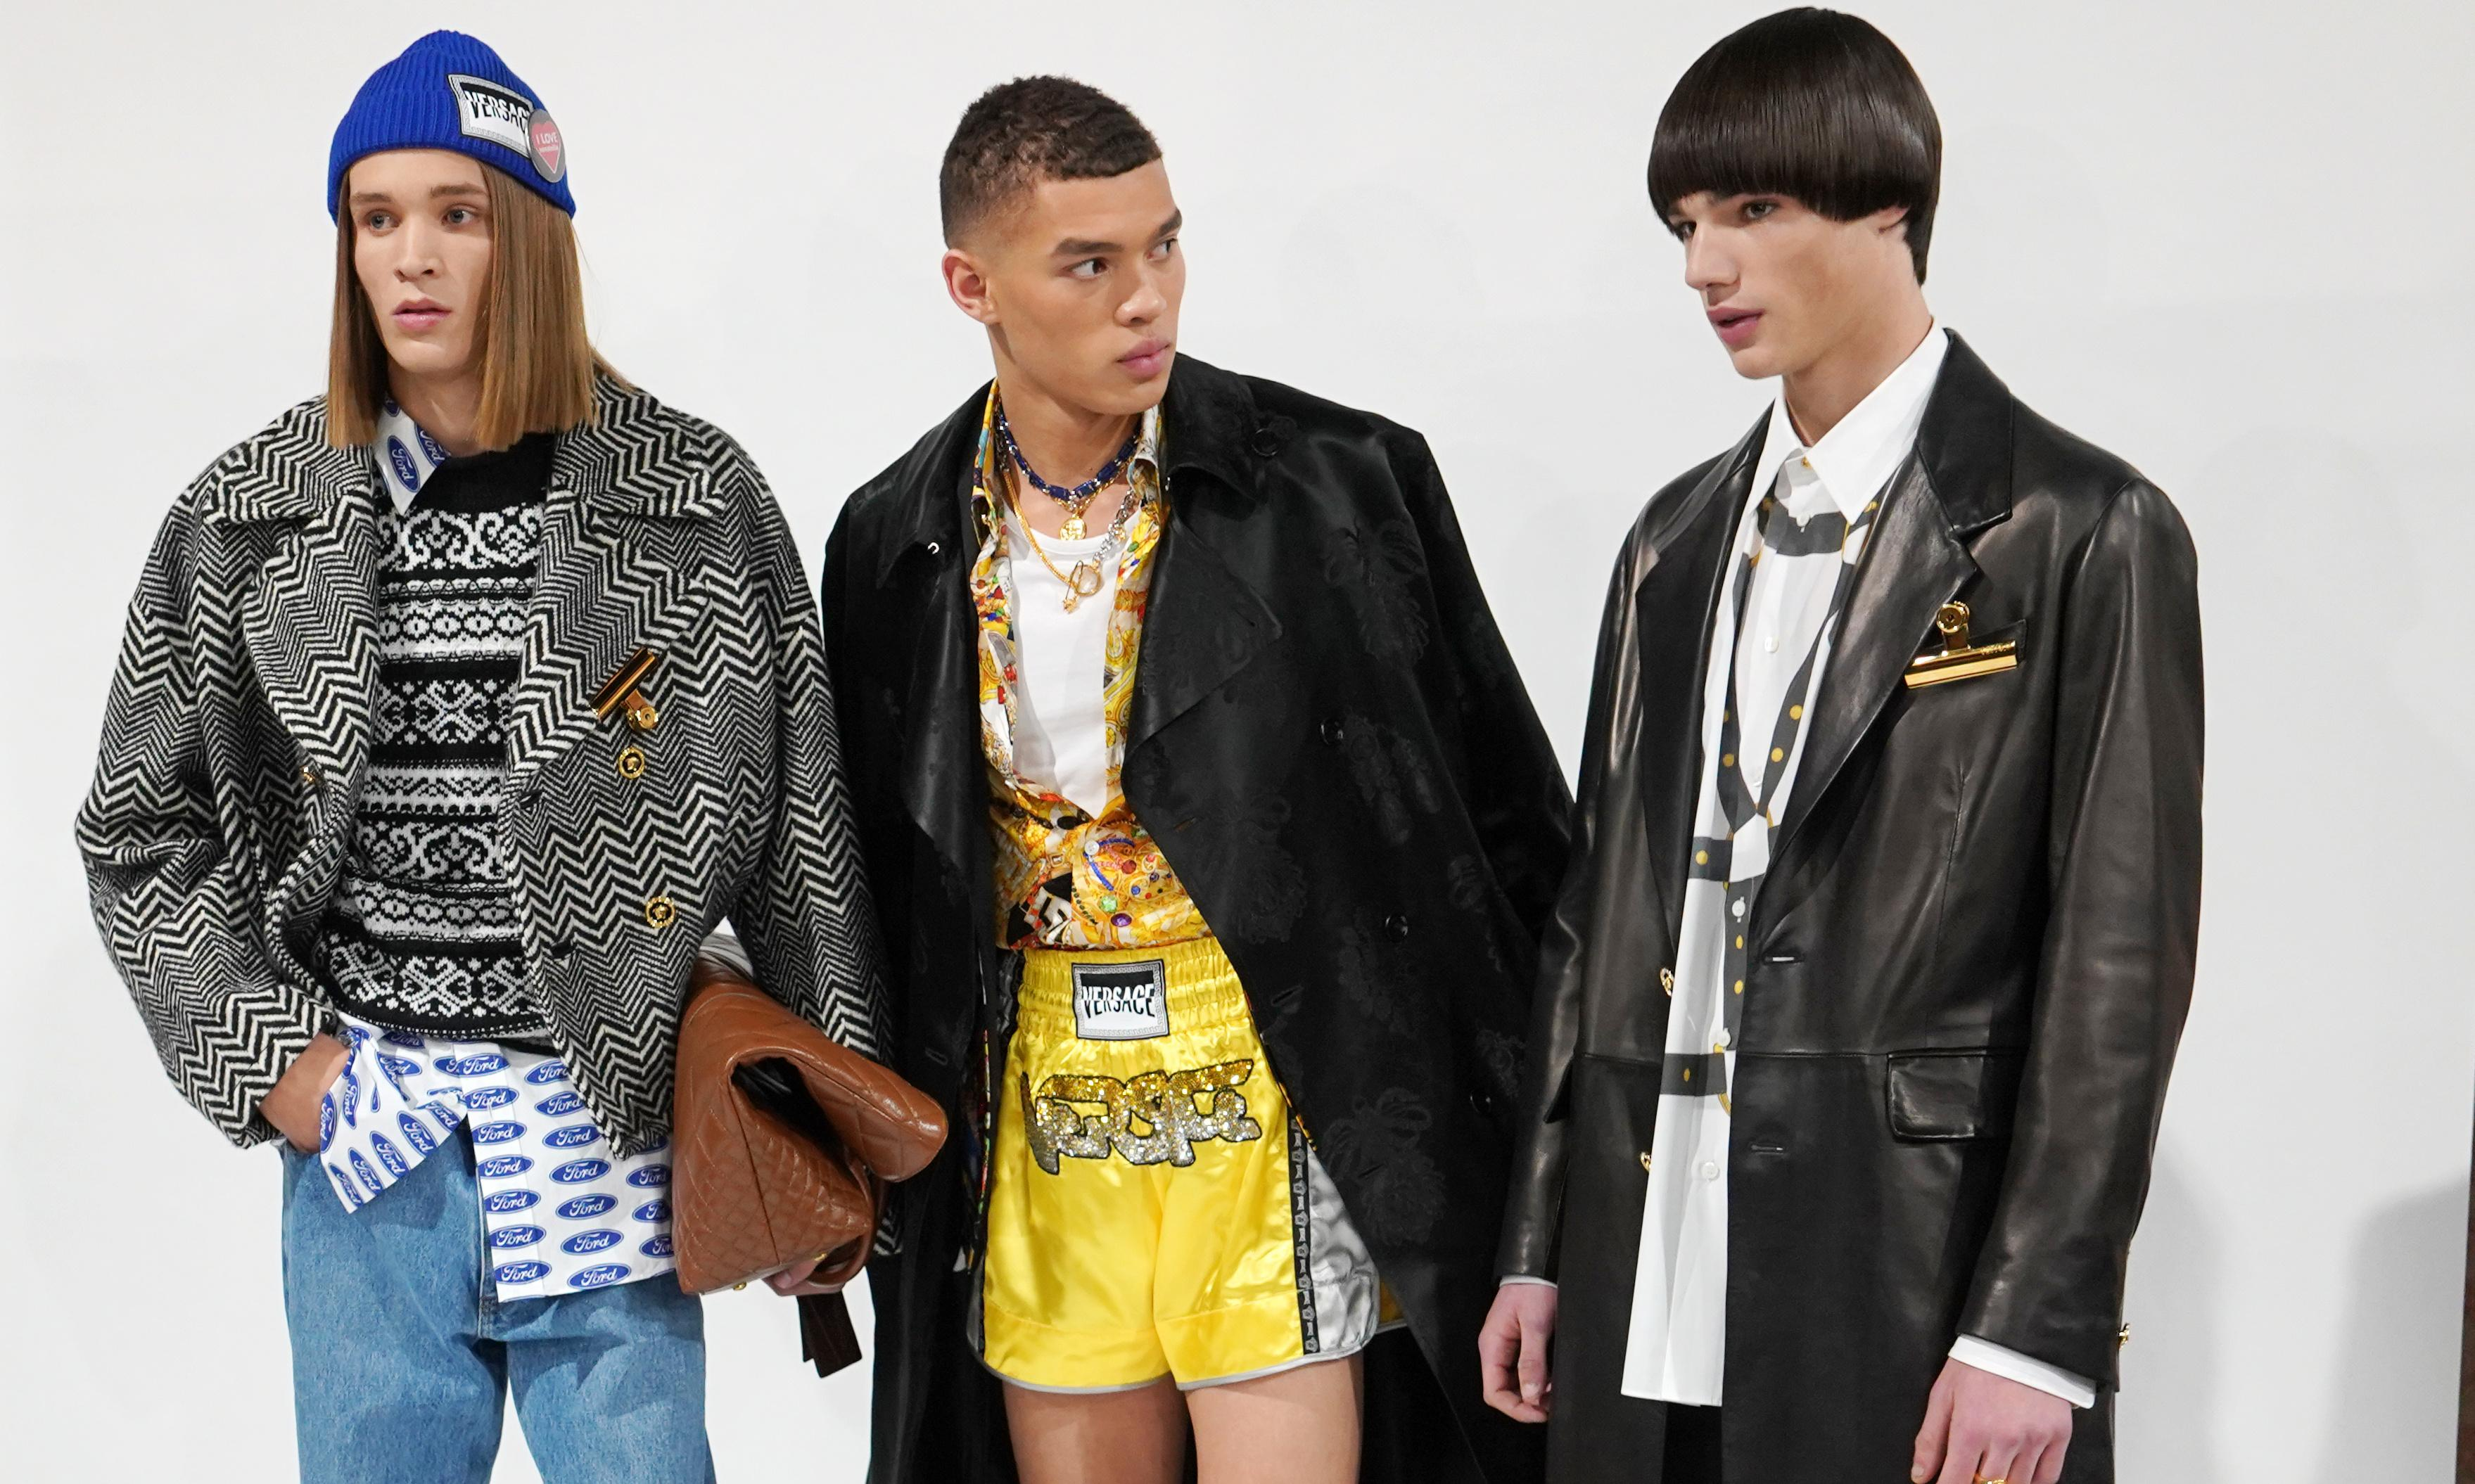 Menswear evolves in new ways at Versace and Marni in Milan